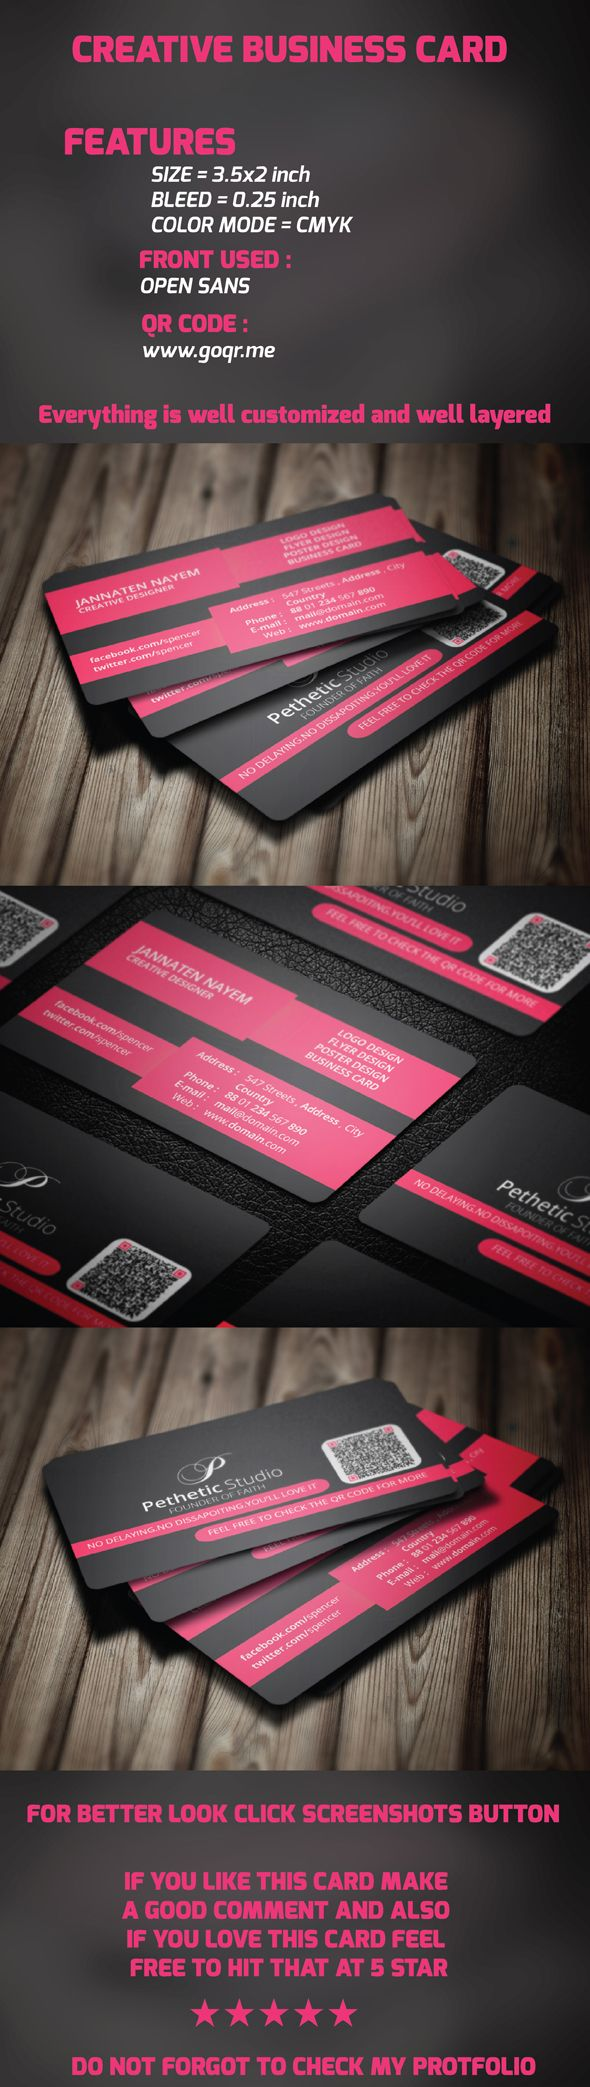 7 best business cards template images on pinterest business card